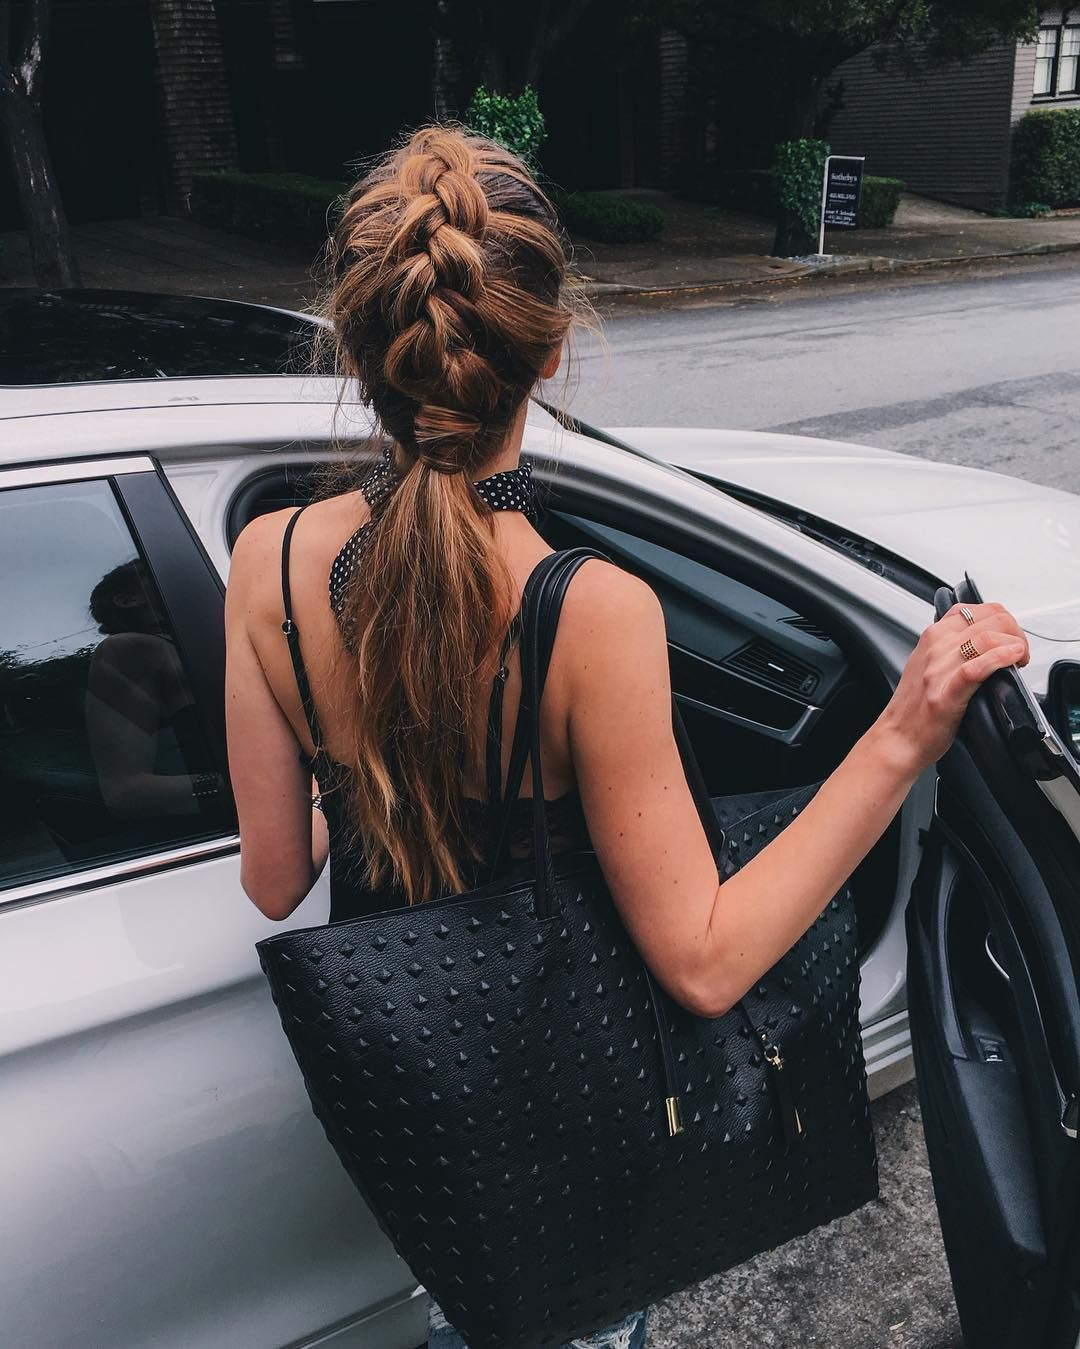 Messy braid for messy weather #messybraids Messy braid for messy weather #messybraids